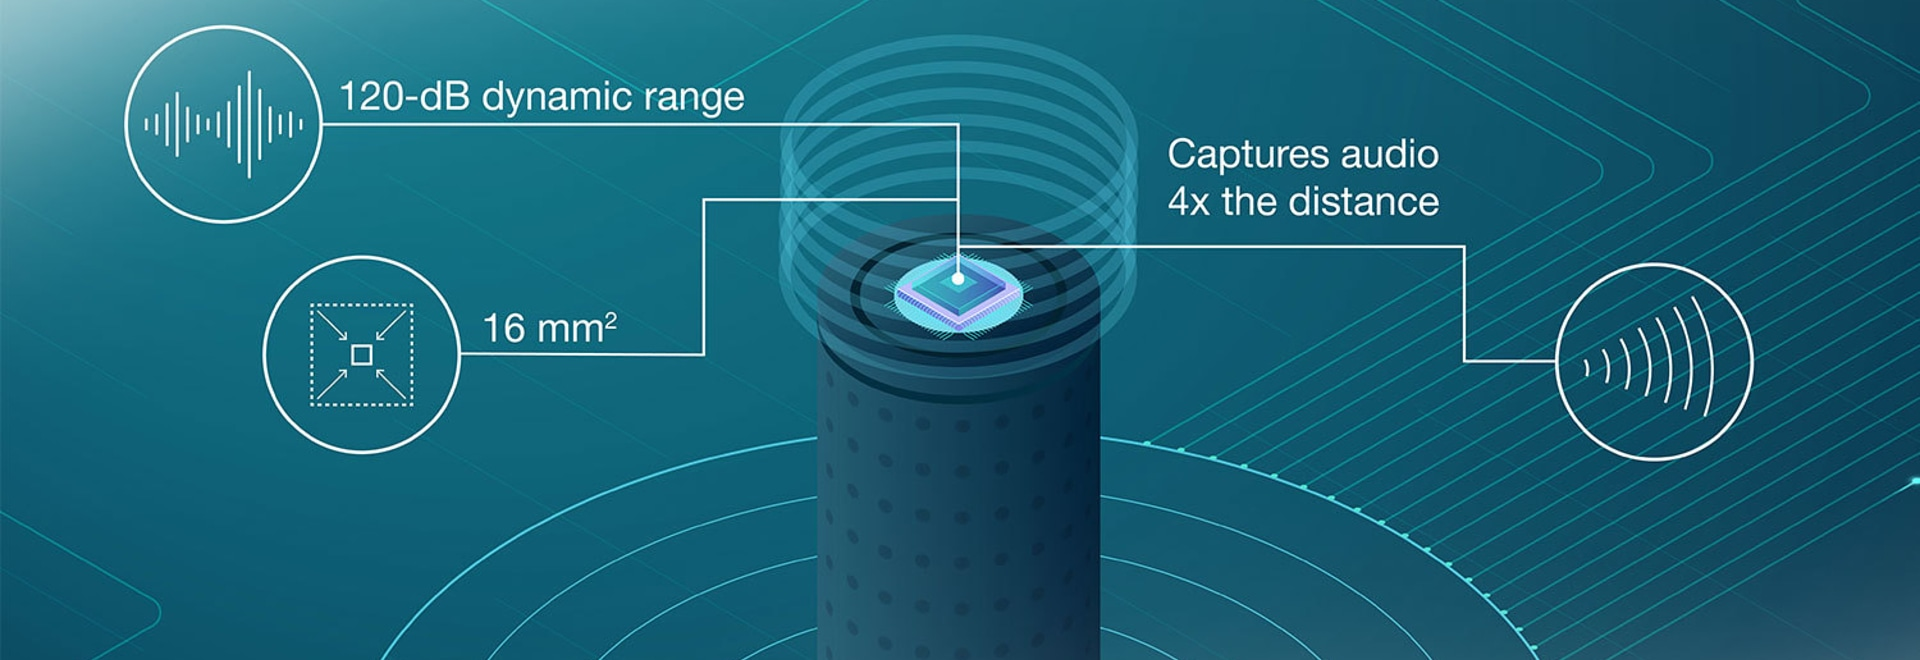 Voice ADC excels at far-field audio